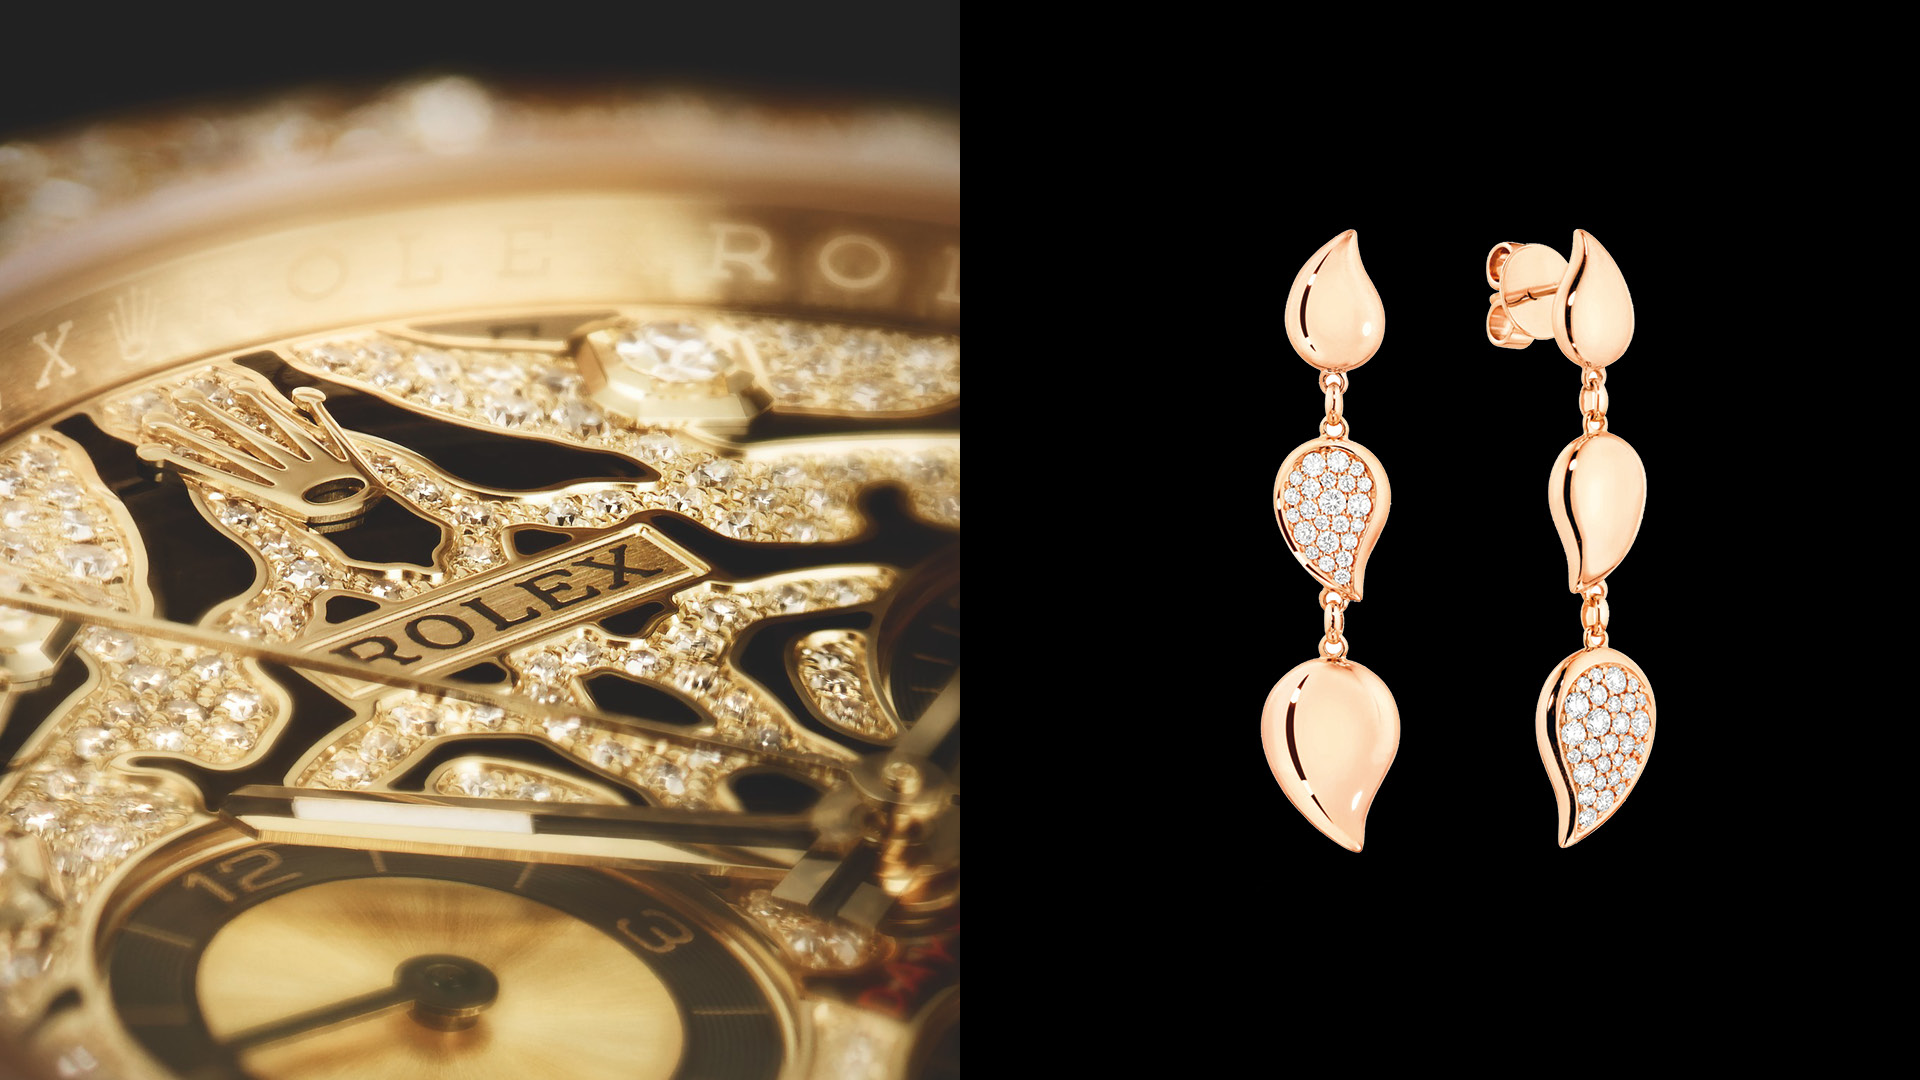 Detail of the Rolex Oyster Perpetual Cosmograph Daytona dial and Signature Wave earrings from Tamara Comolli